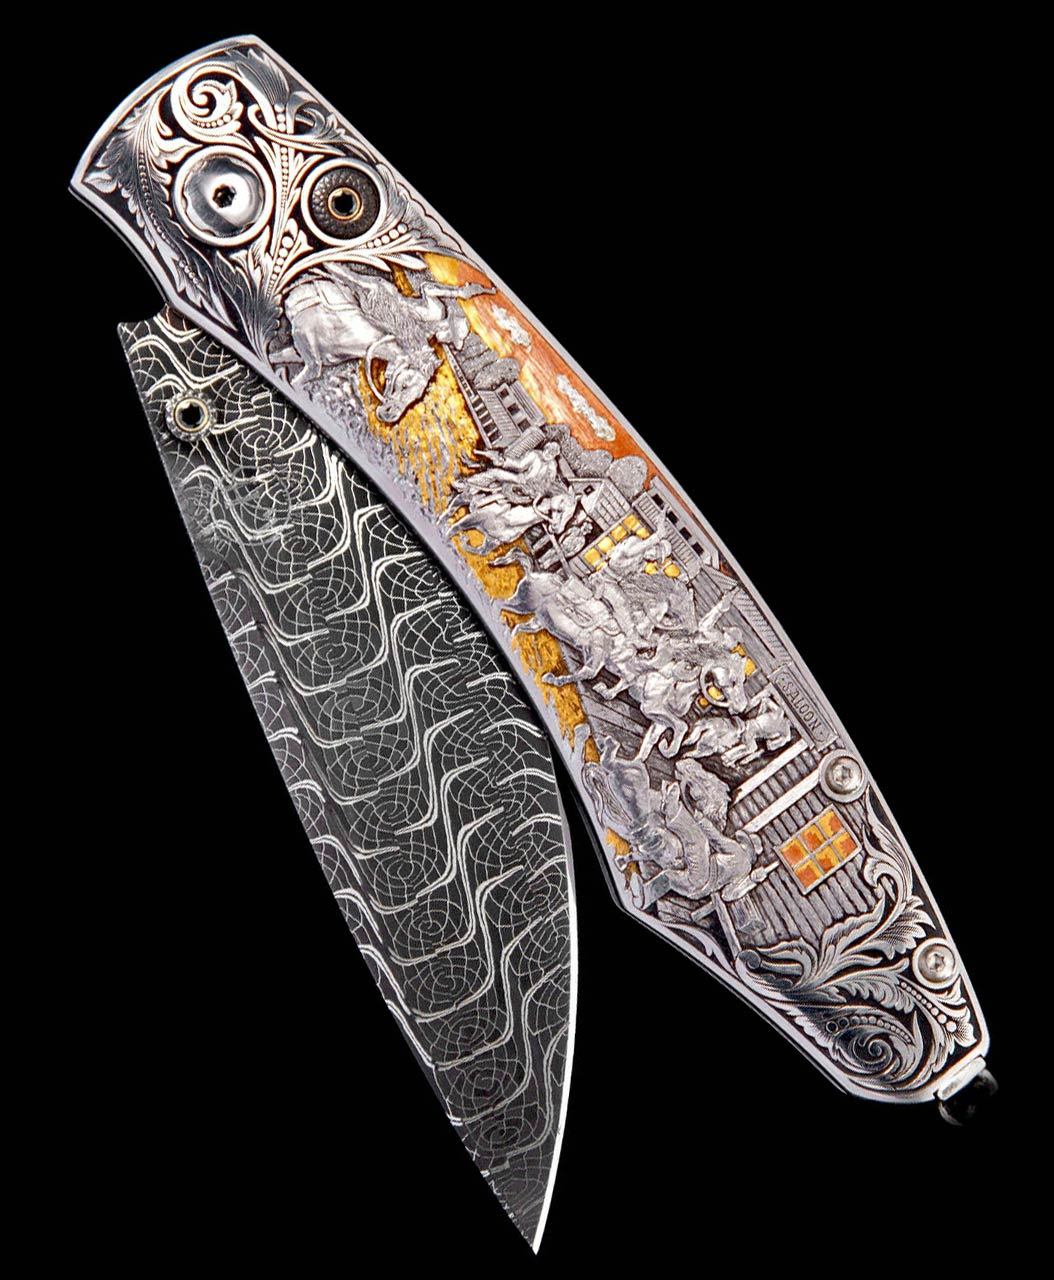 William Henry Spearpoint Cowboys & Indians Engraved One-of-a-Kind